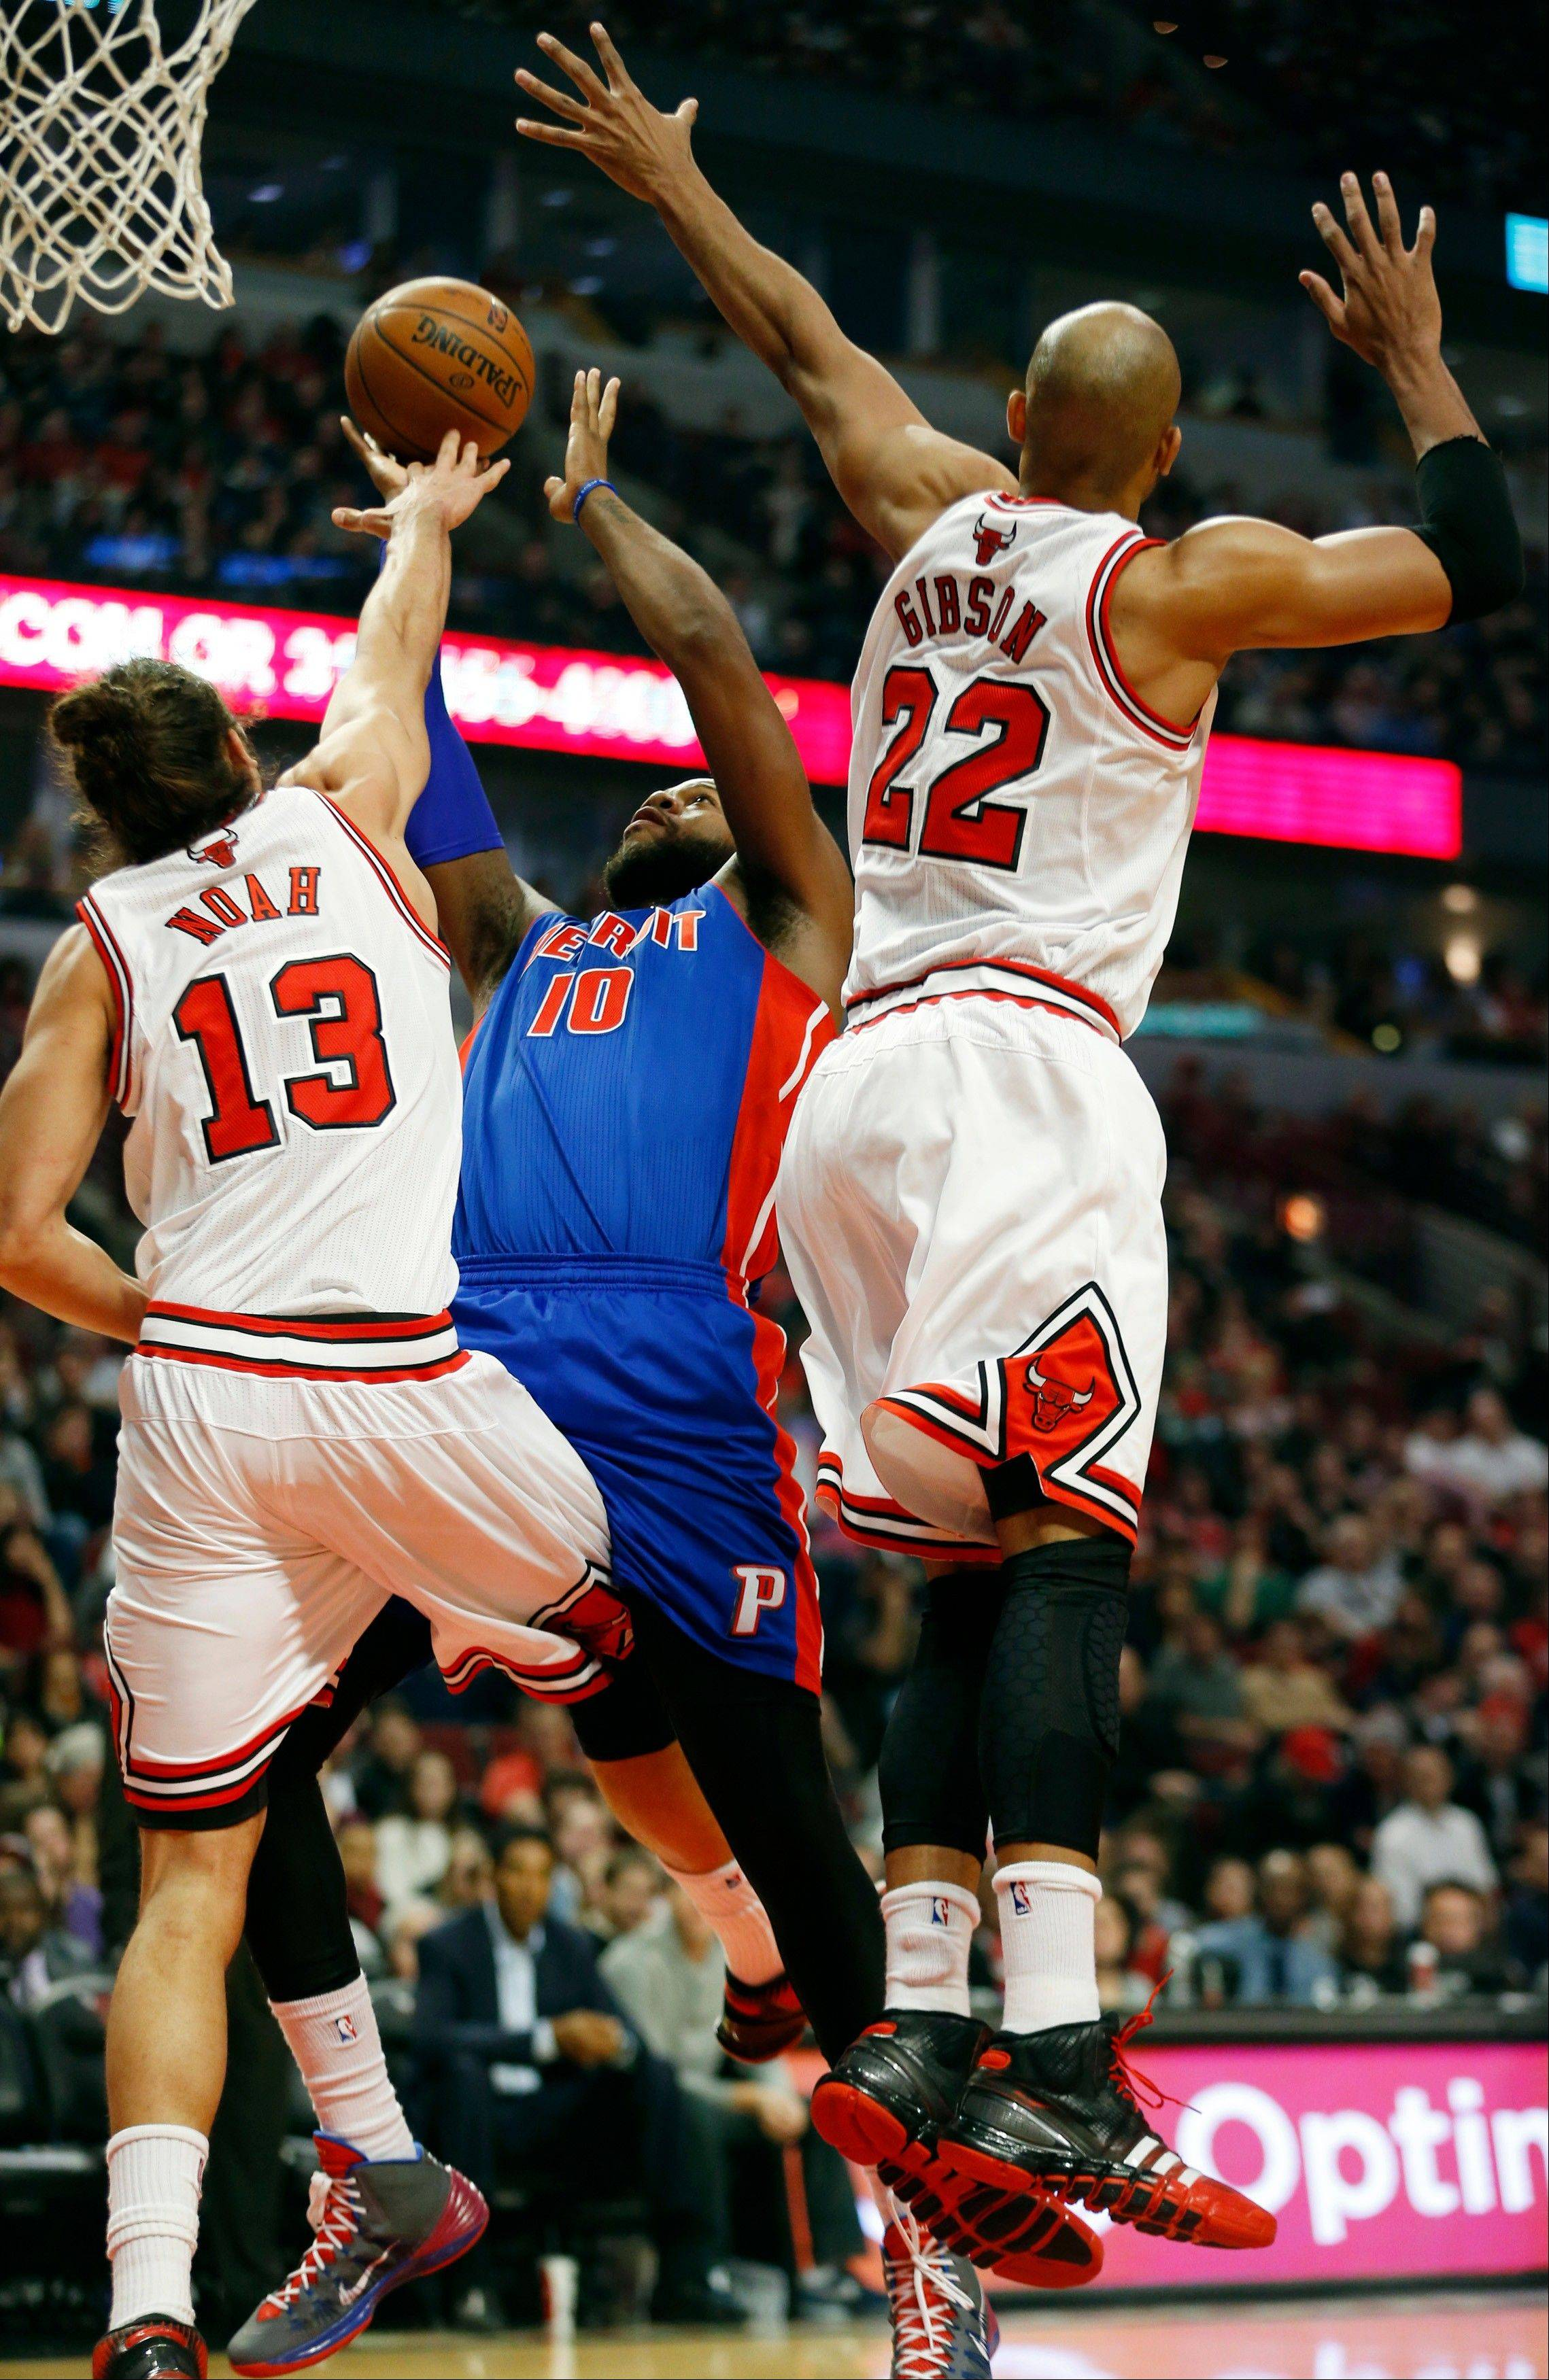 The Pistons' Greg Monroe drives to the basket against the Bulls' Joakim Noah and Taj Gibson on Saturday at the United Center.